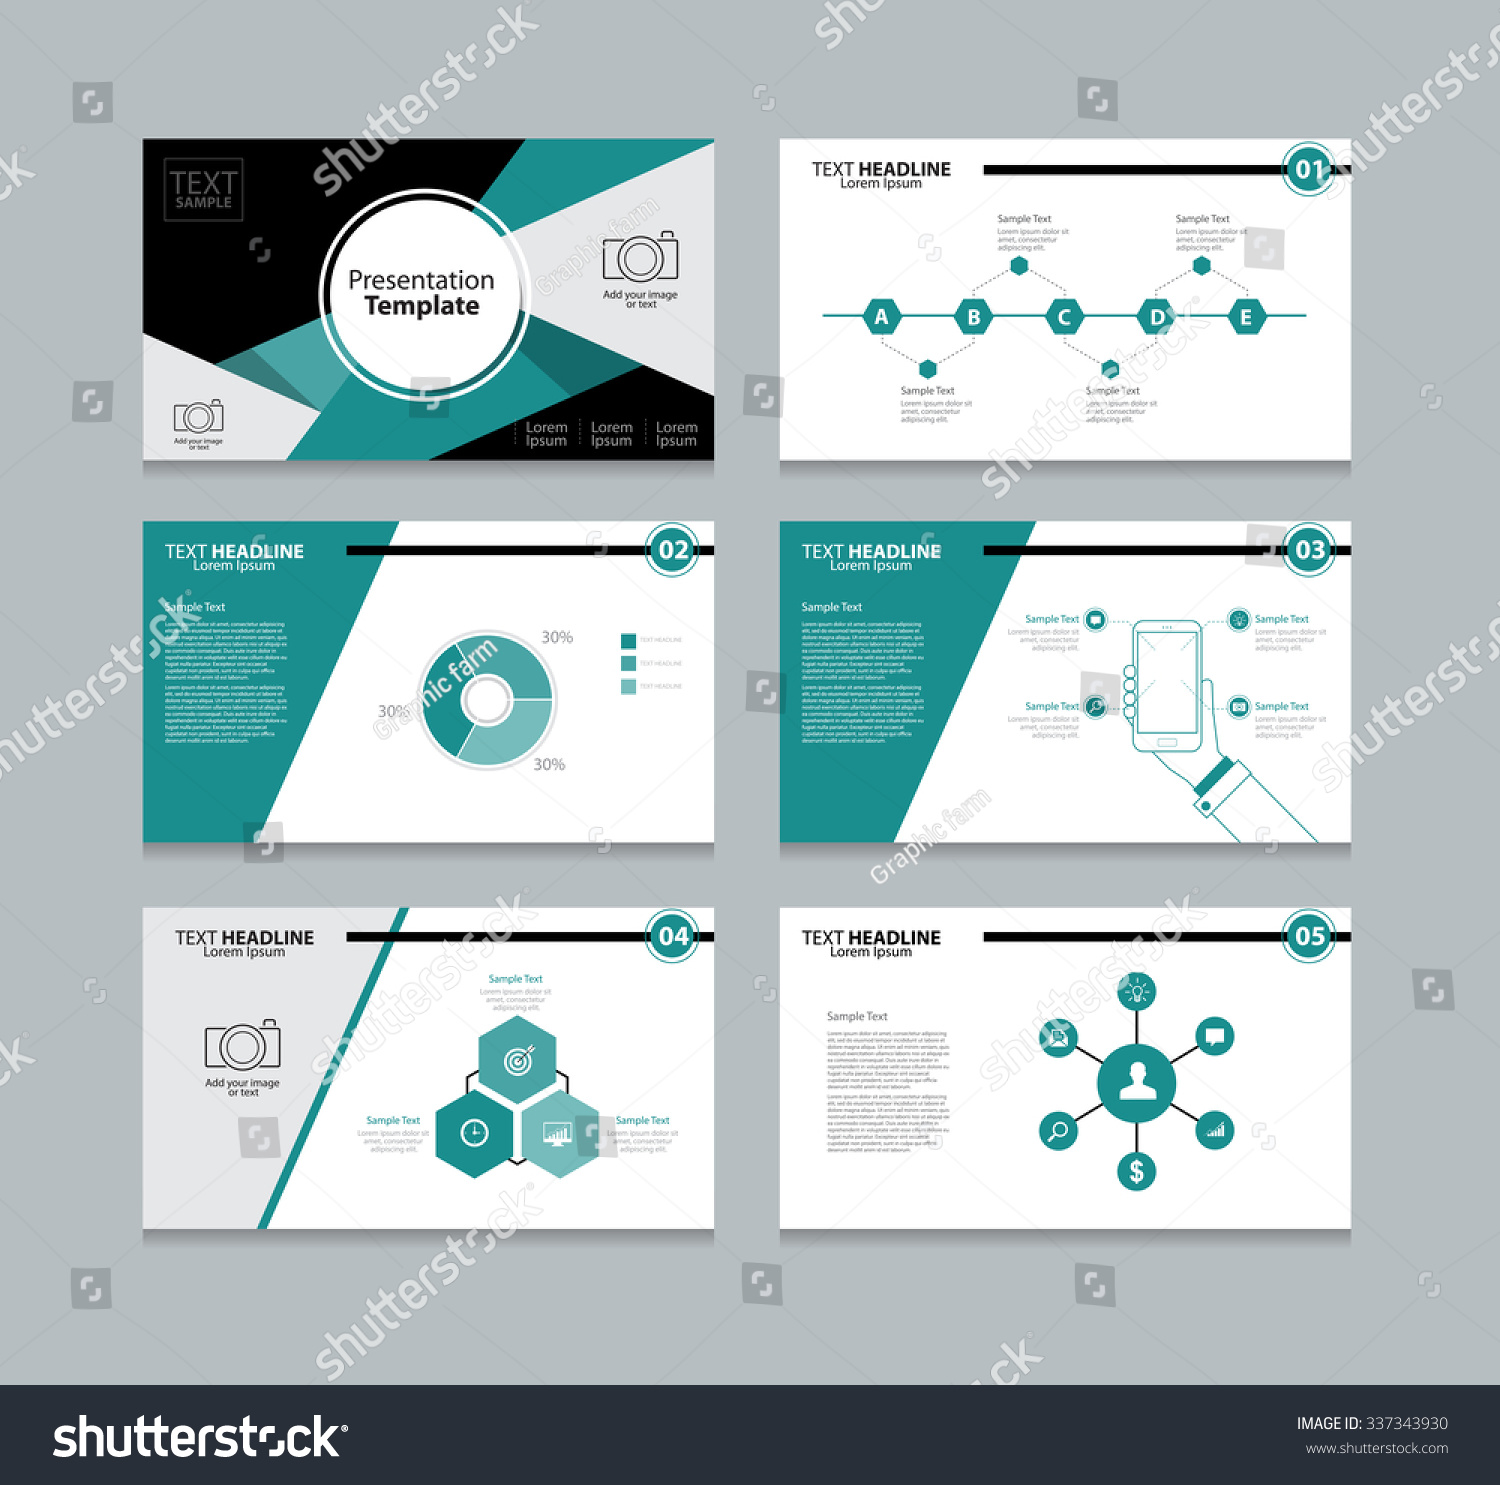 abstract vector business presentation template slides background design info graphic